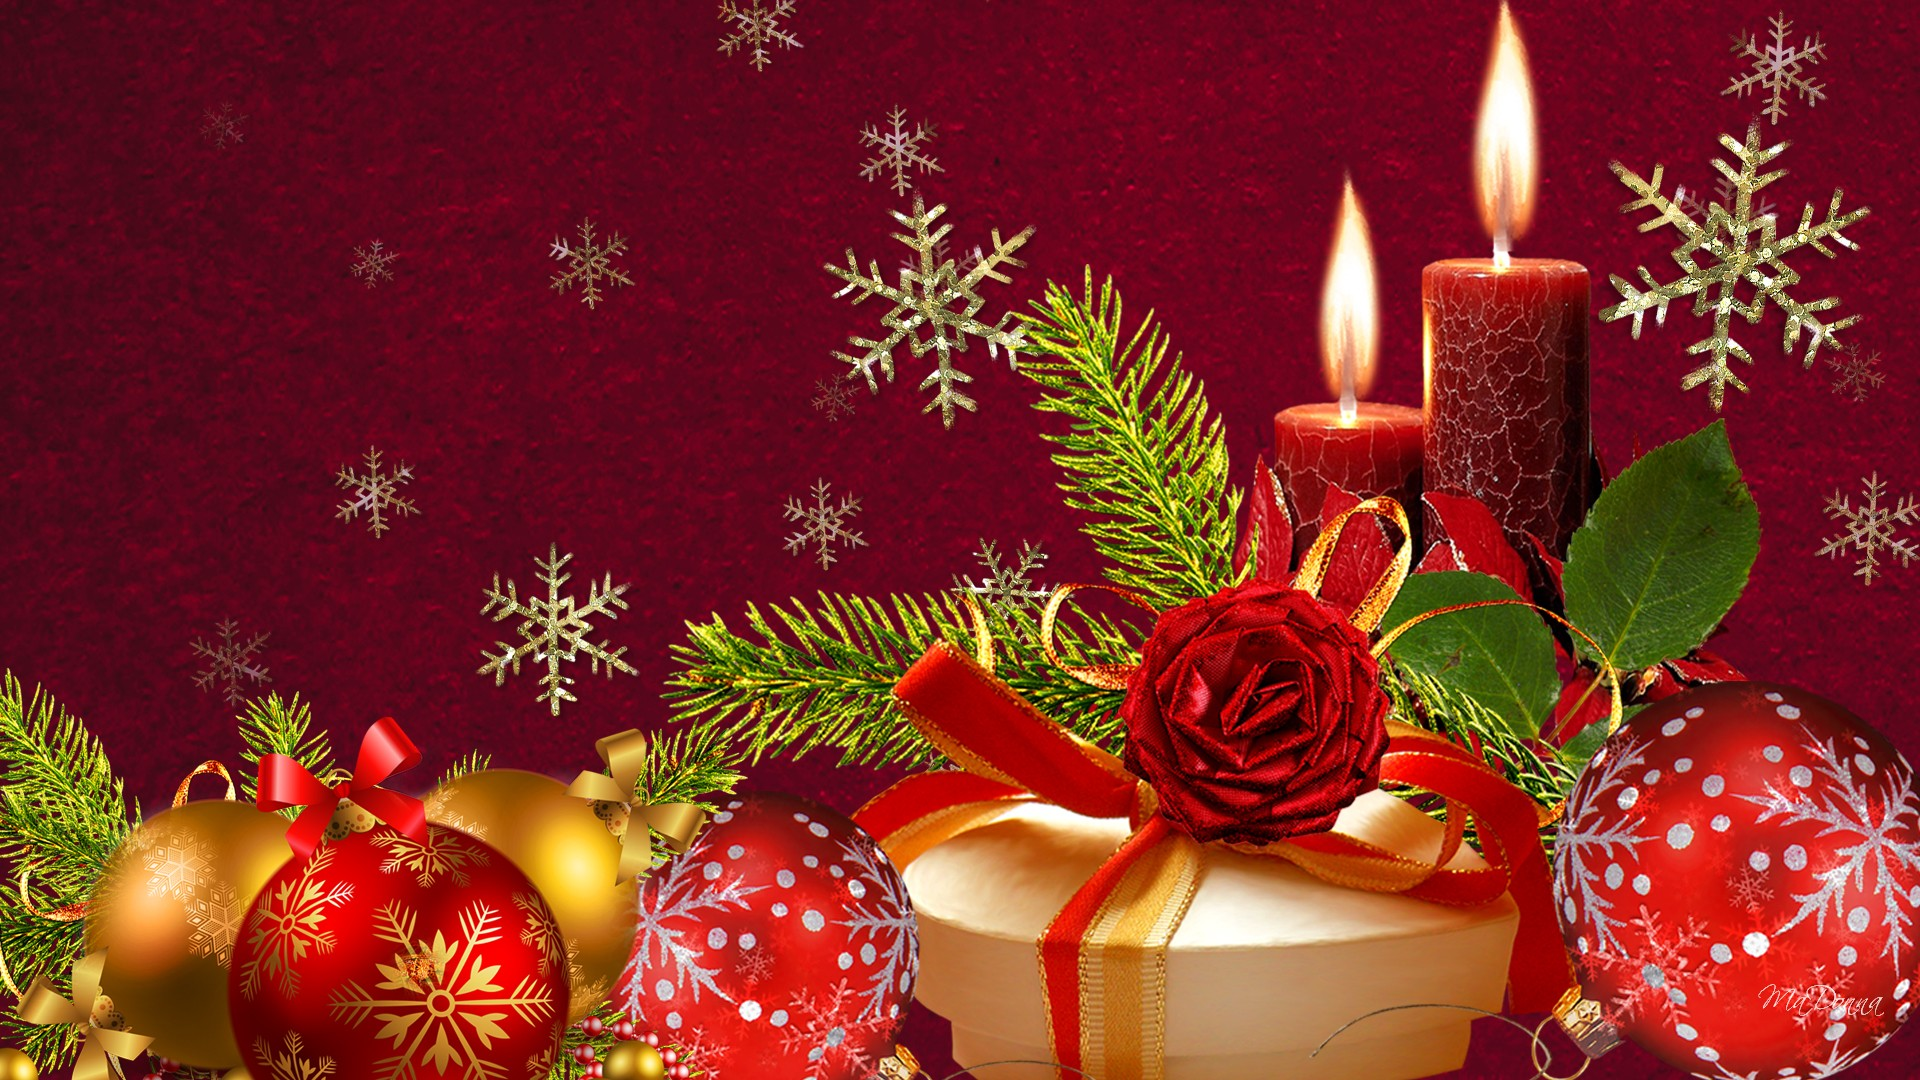 Christmas Background Wallpapers Wallpapers9 1920x1080